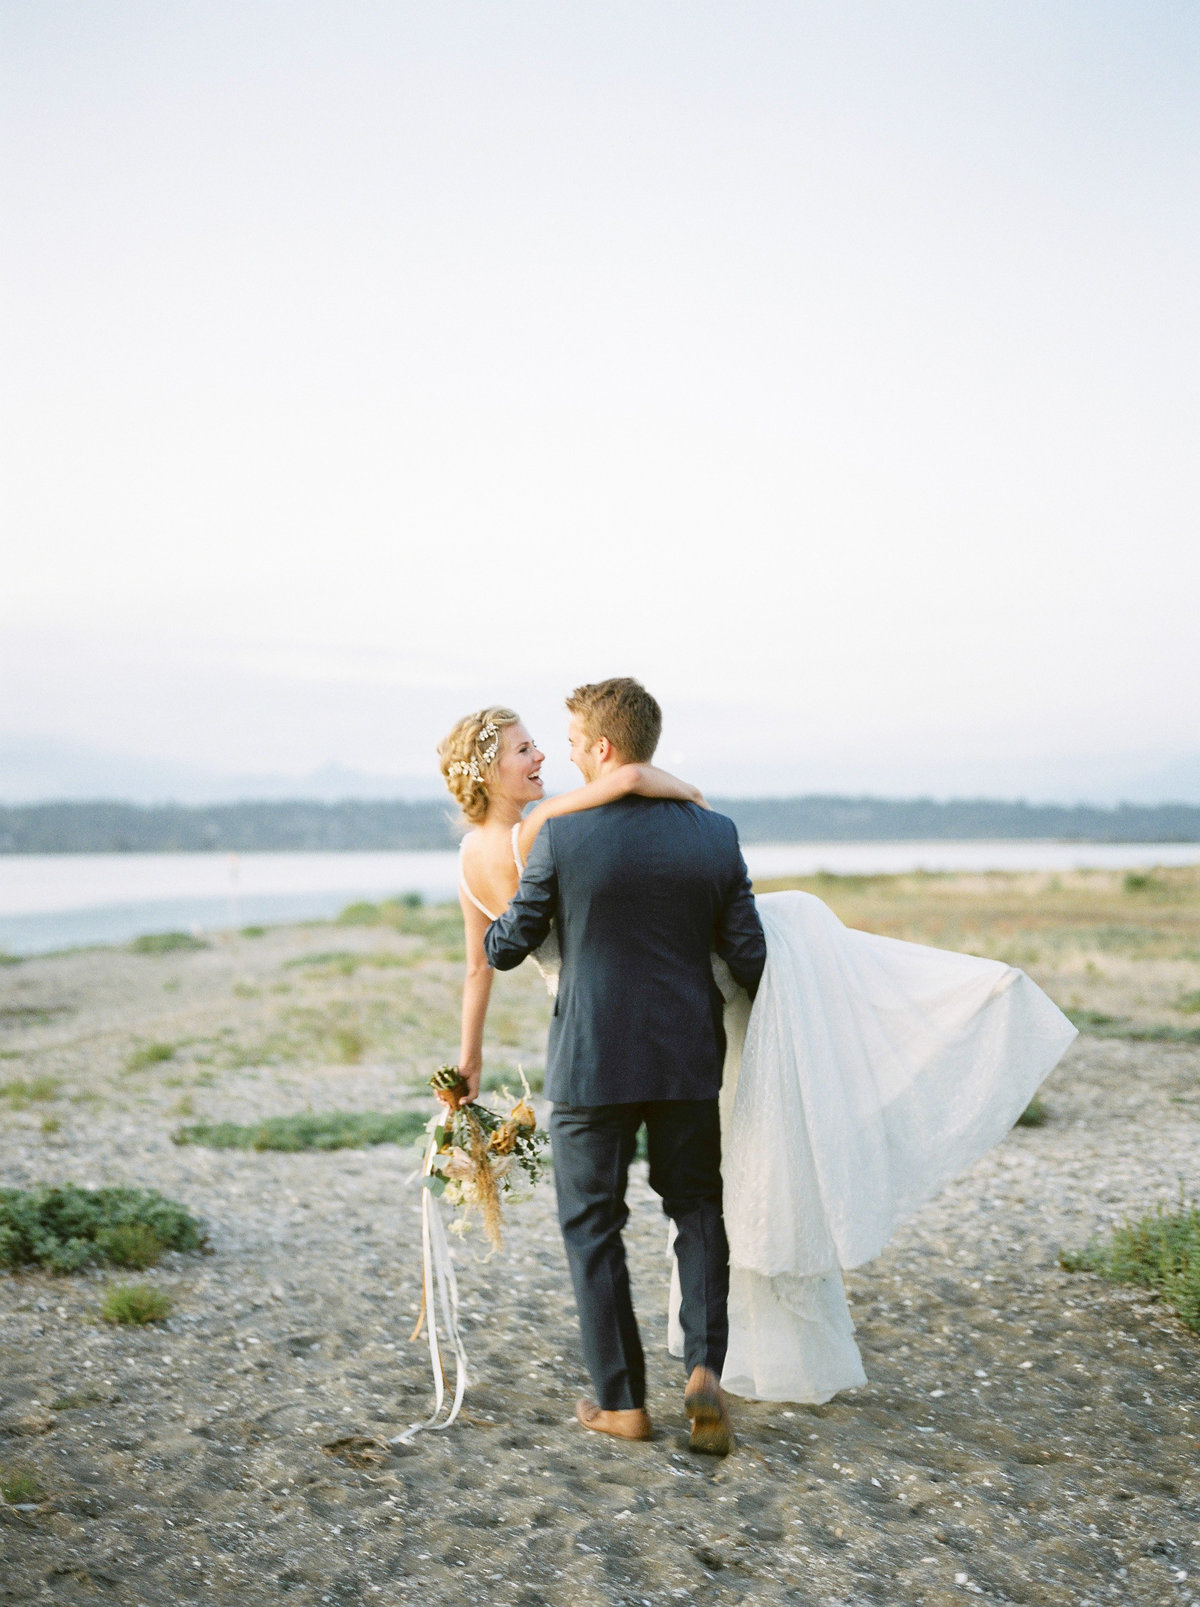 blue wedding dress beach wedding vancouver